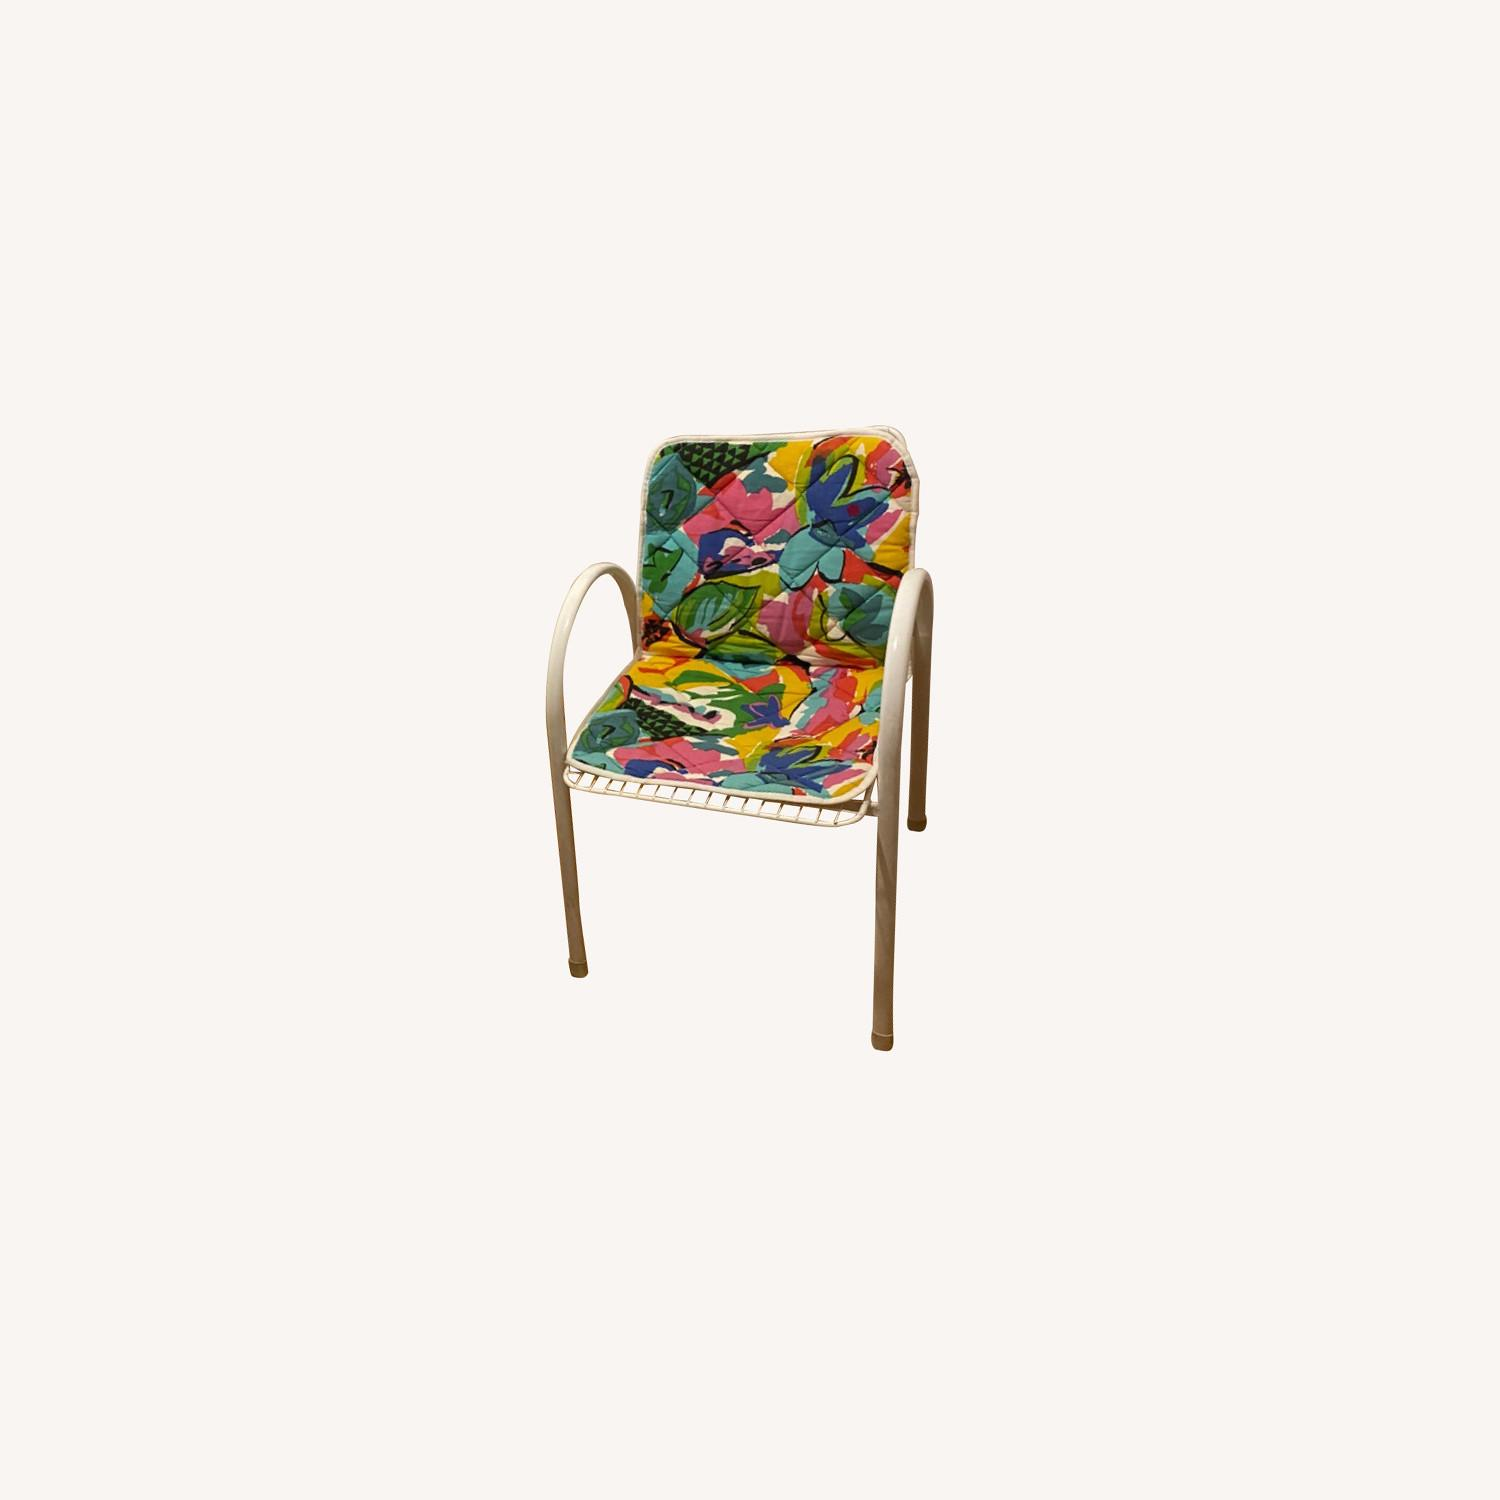 Vintage Garden Chairs With Seat Covers - image-0